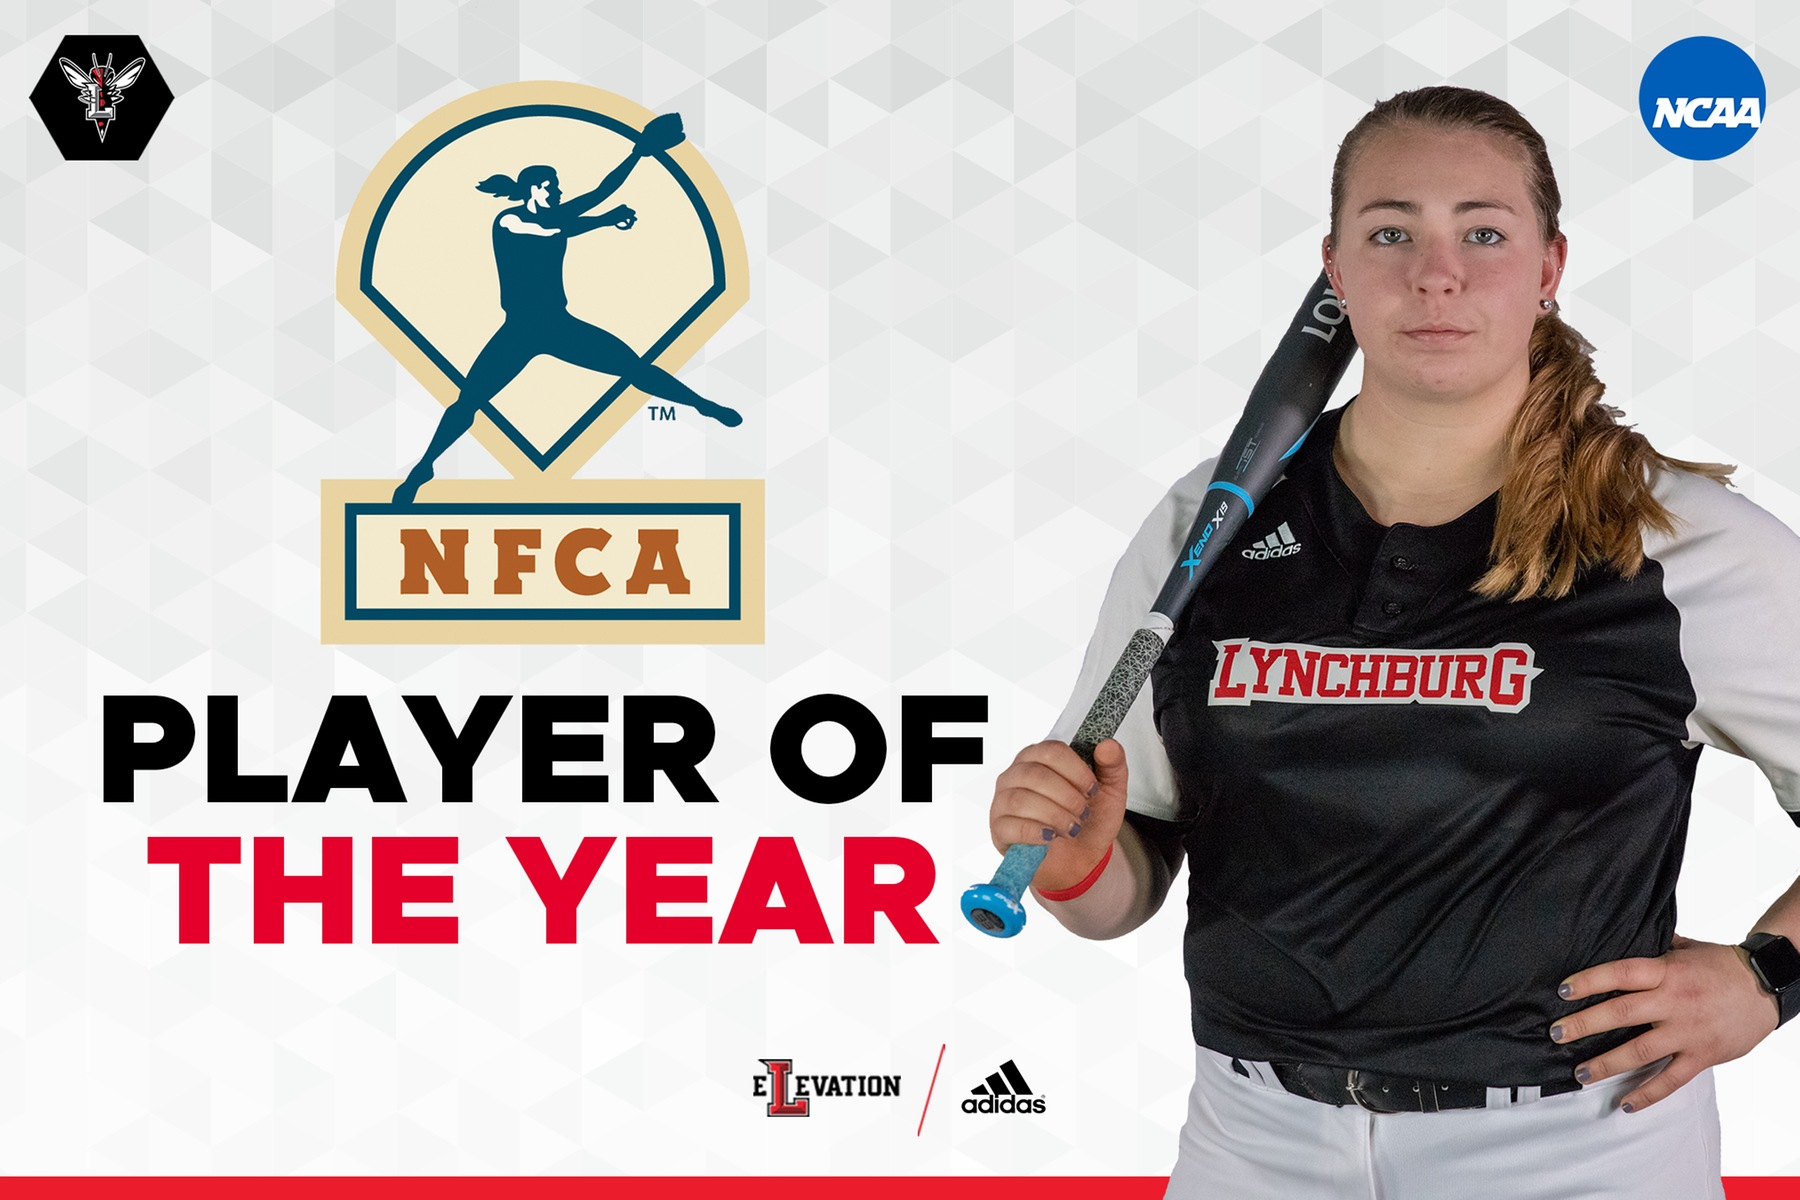 IMage of Mackenzie Chitwood holding bat on white background. Text: NFCA player of the year